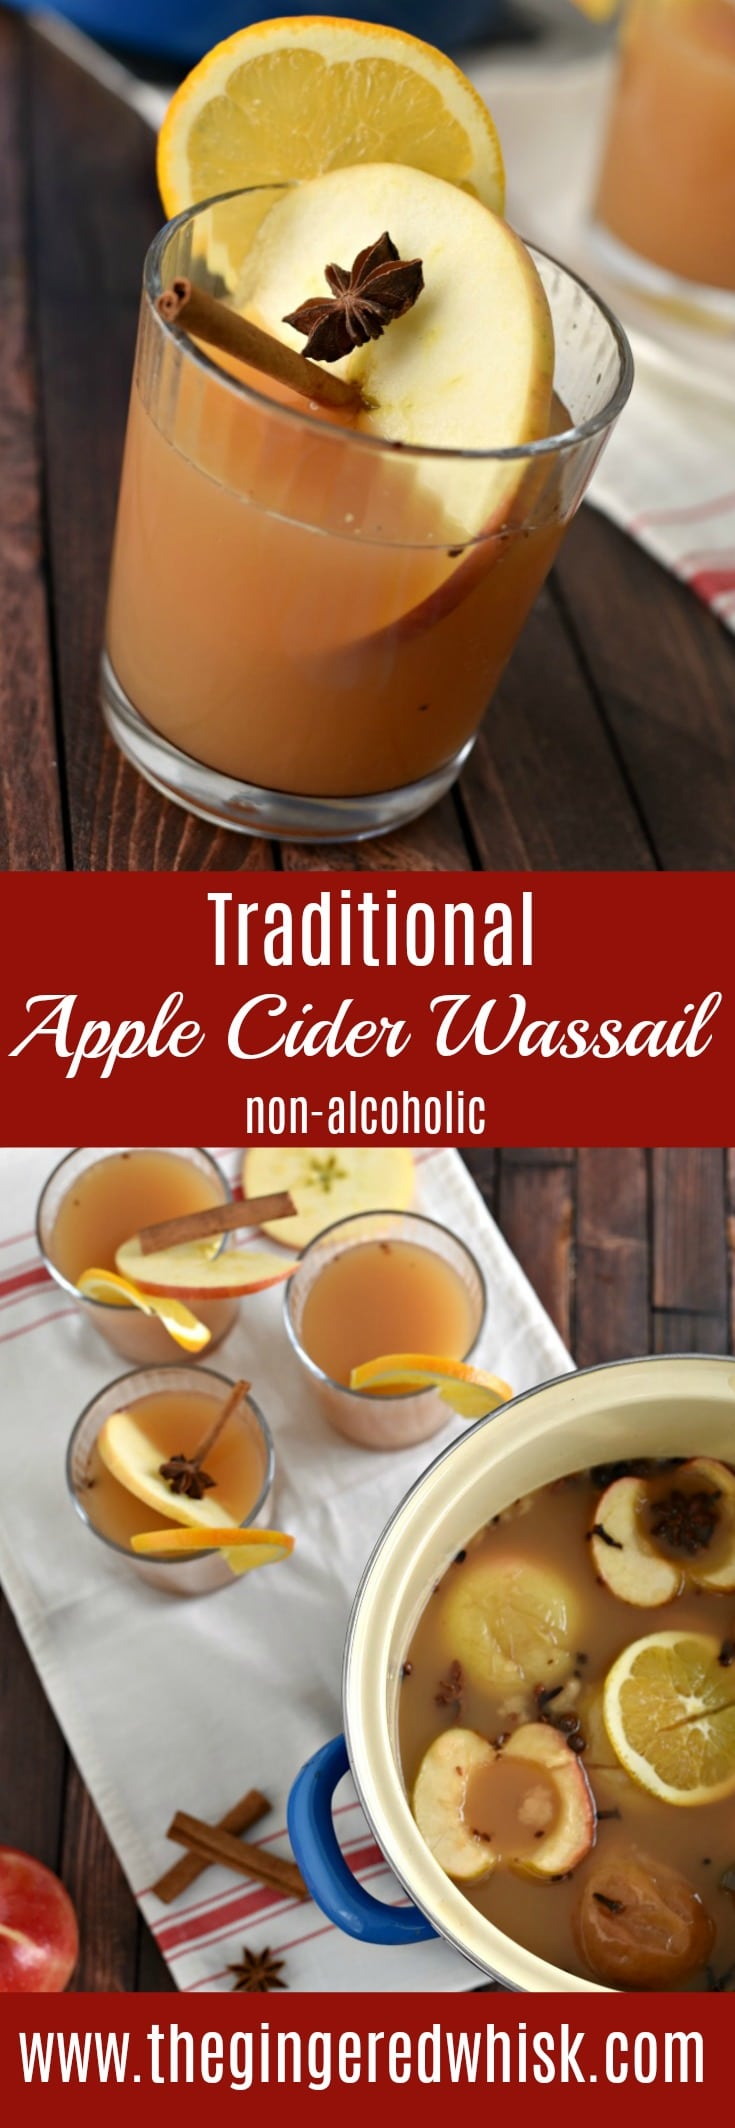 This traditional apple cider wassail is perfect for the holidays! Whether or not you go caroling, this non-alcoholic warm spiced drink recipe is perfect!